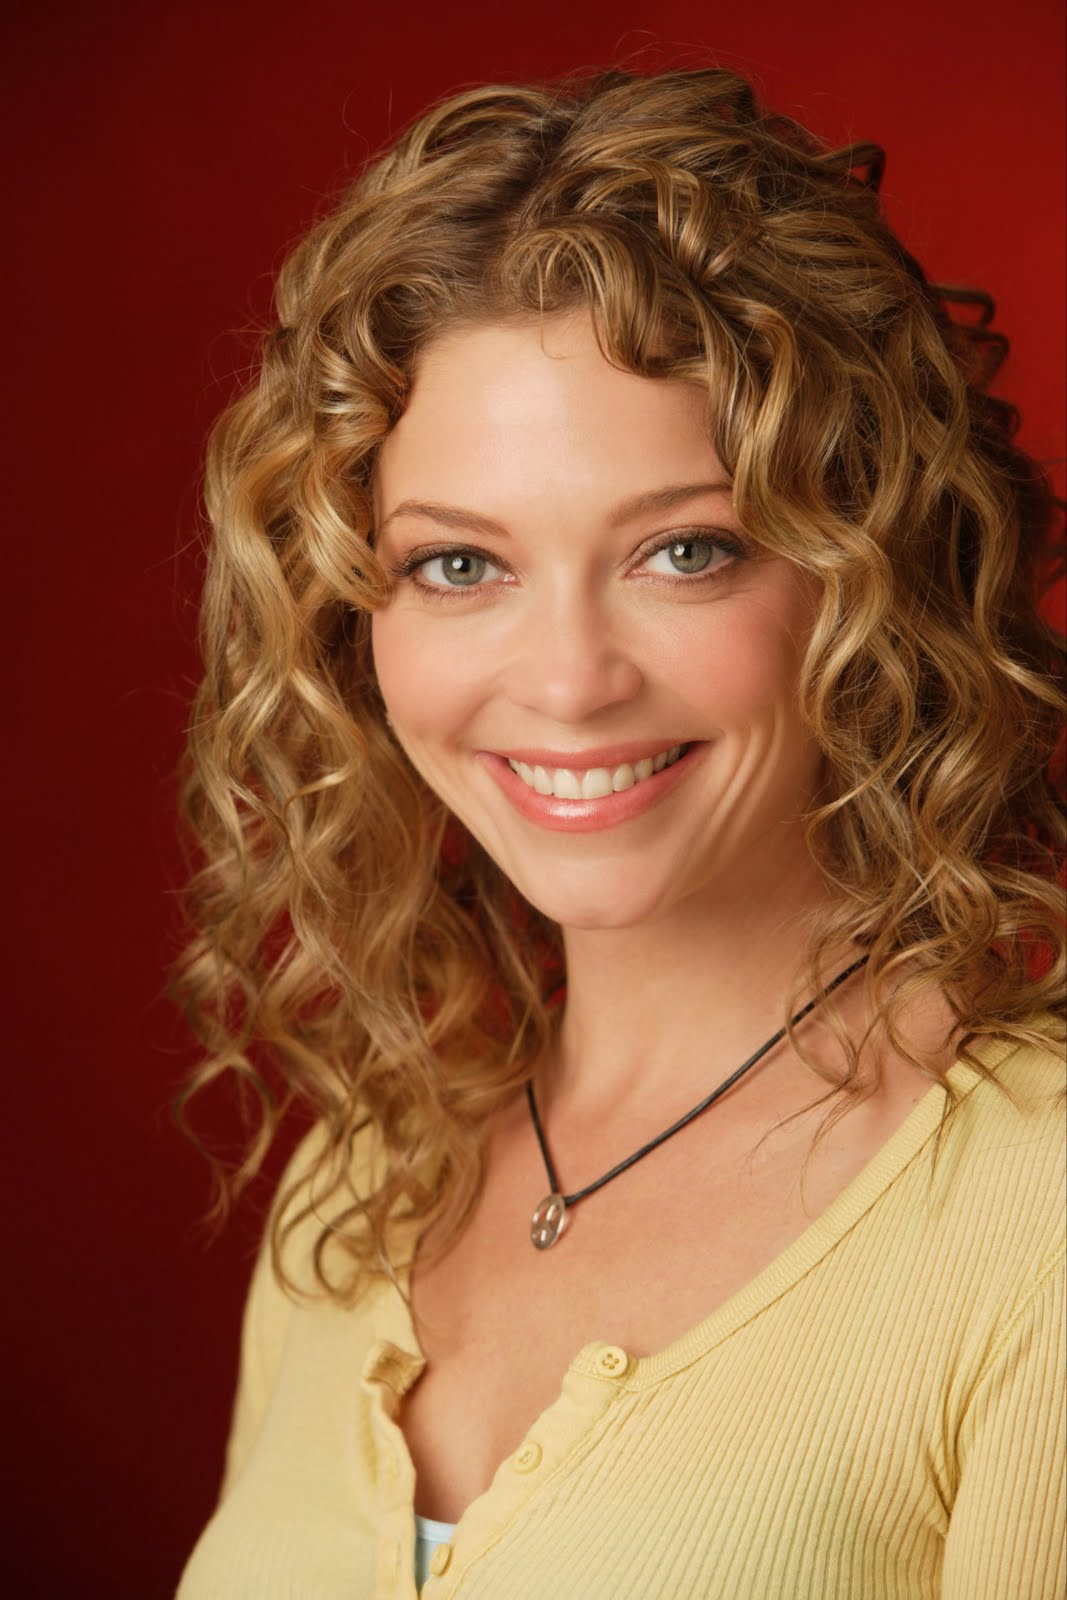 Image result for Shirley temple curls hair